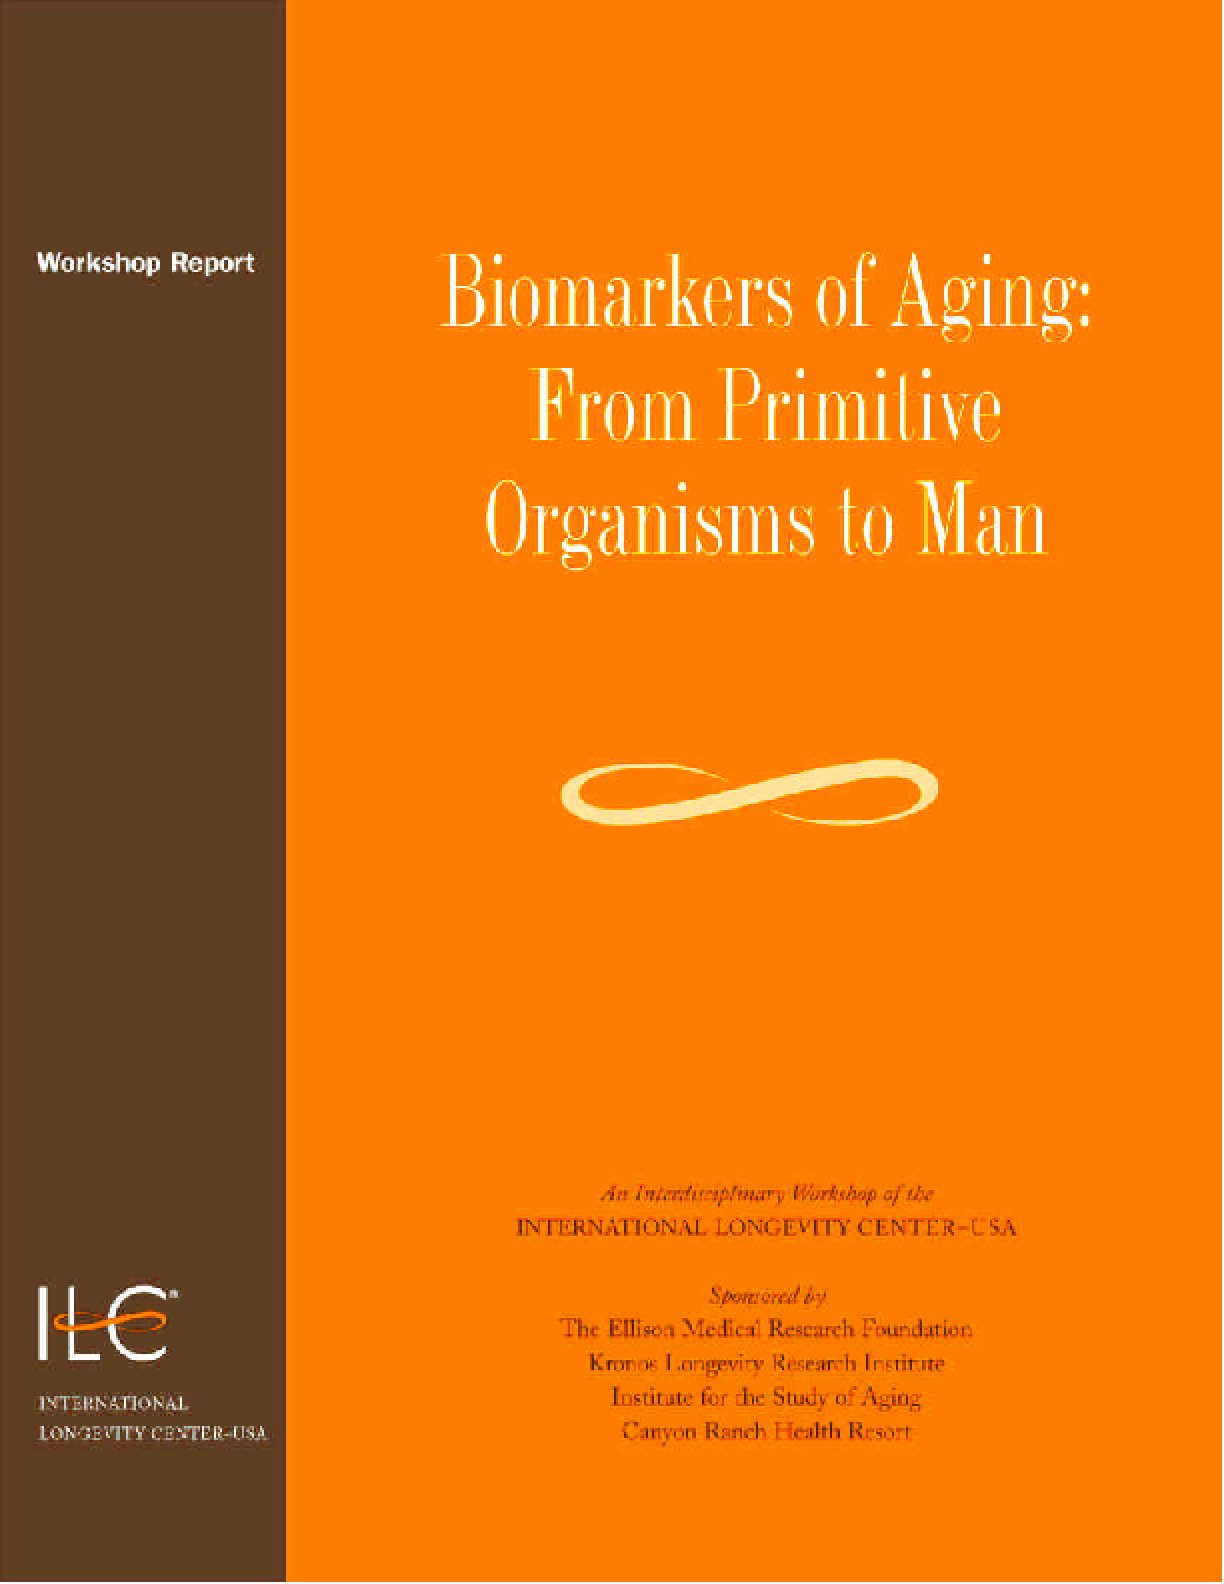 Biomarkers of Aging: From Primitive Organisms to Man